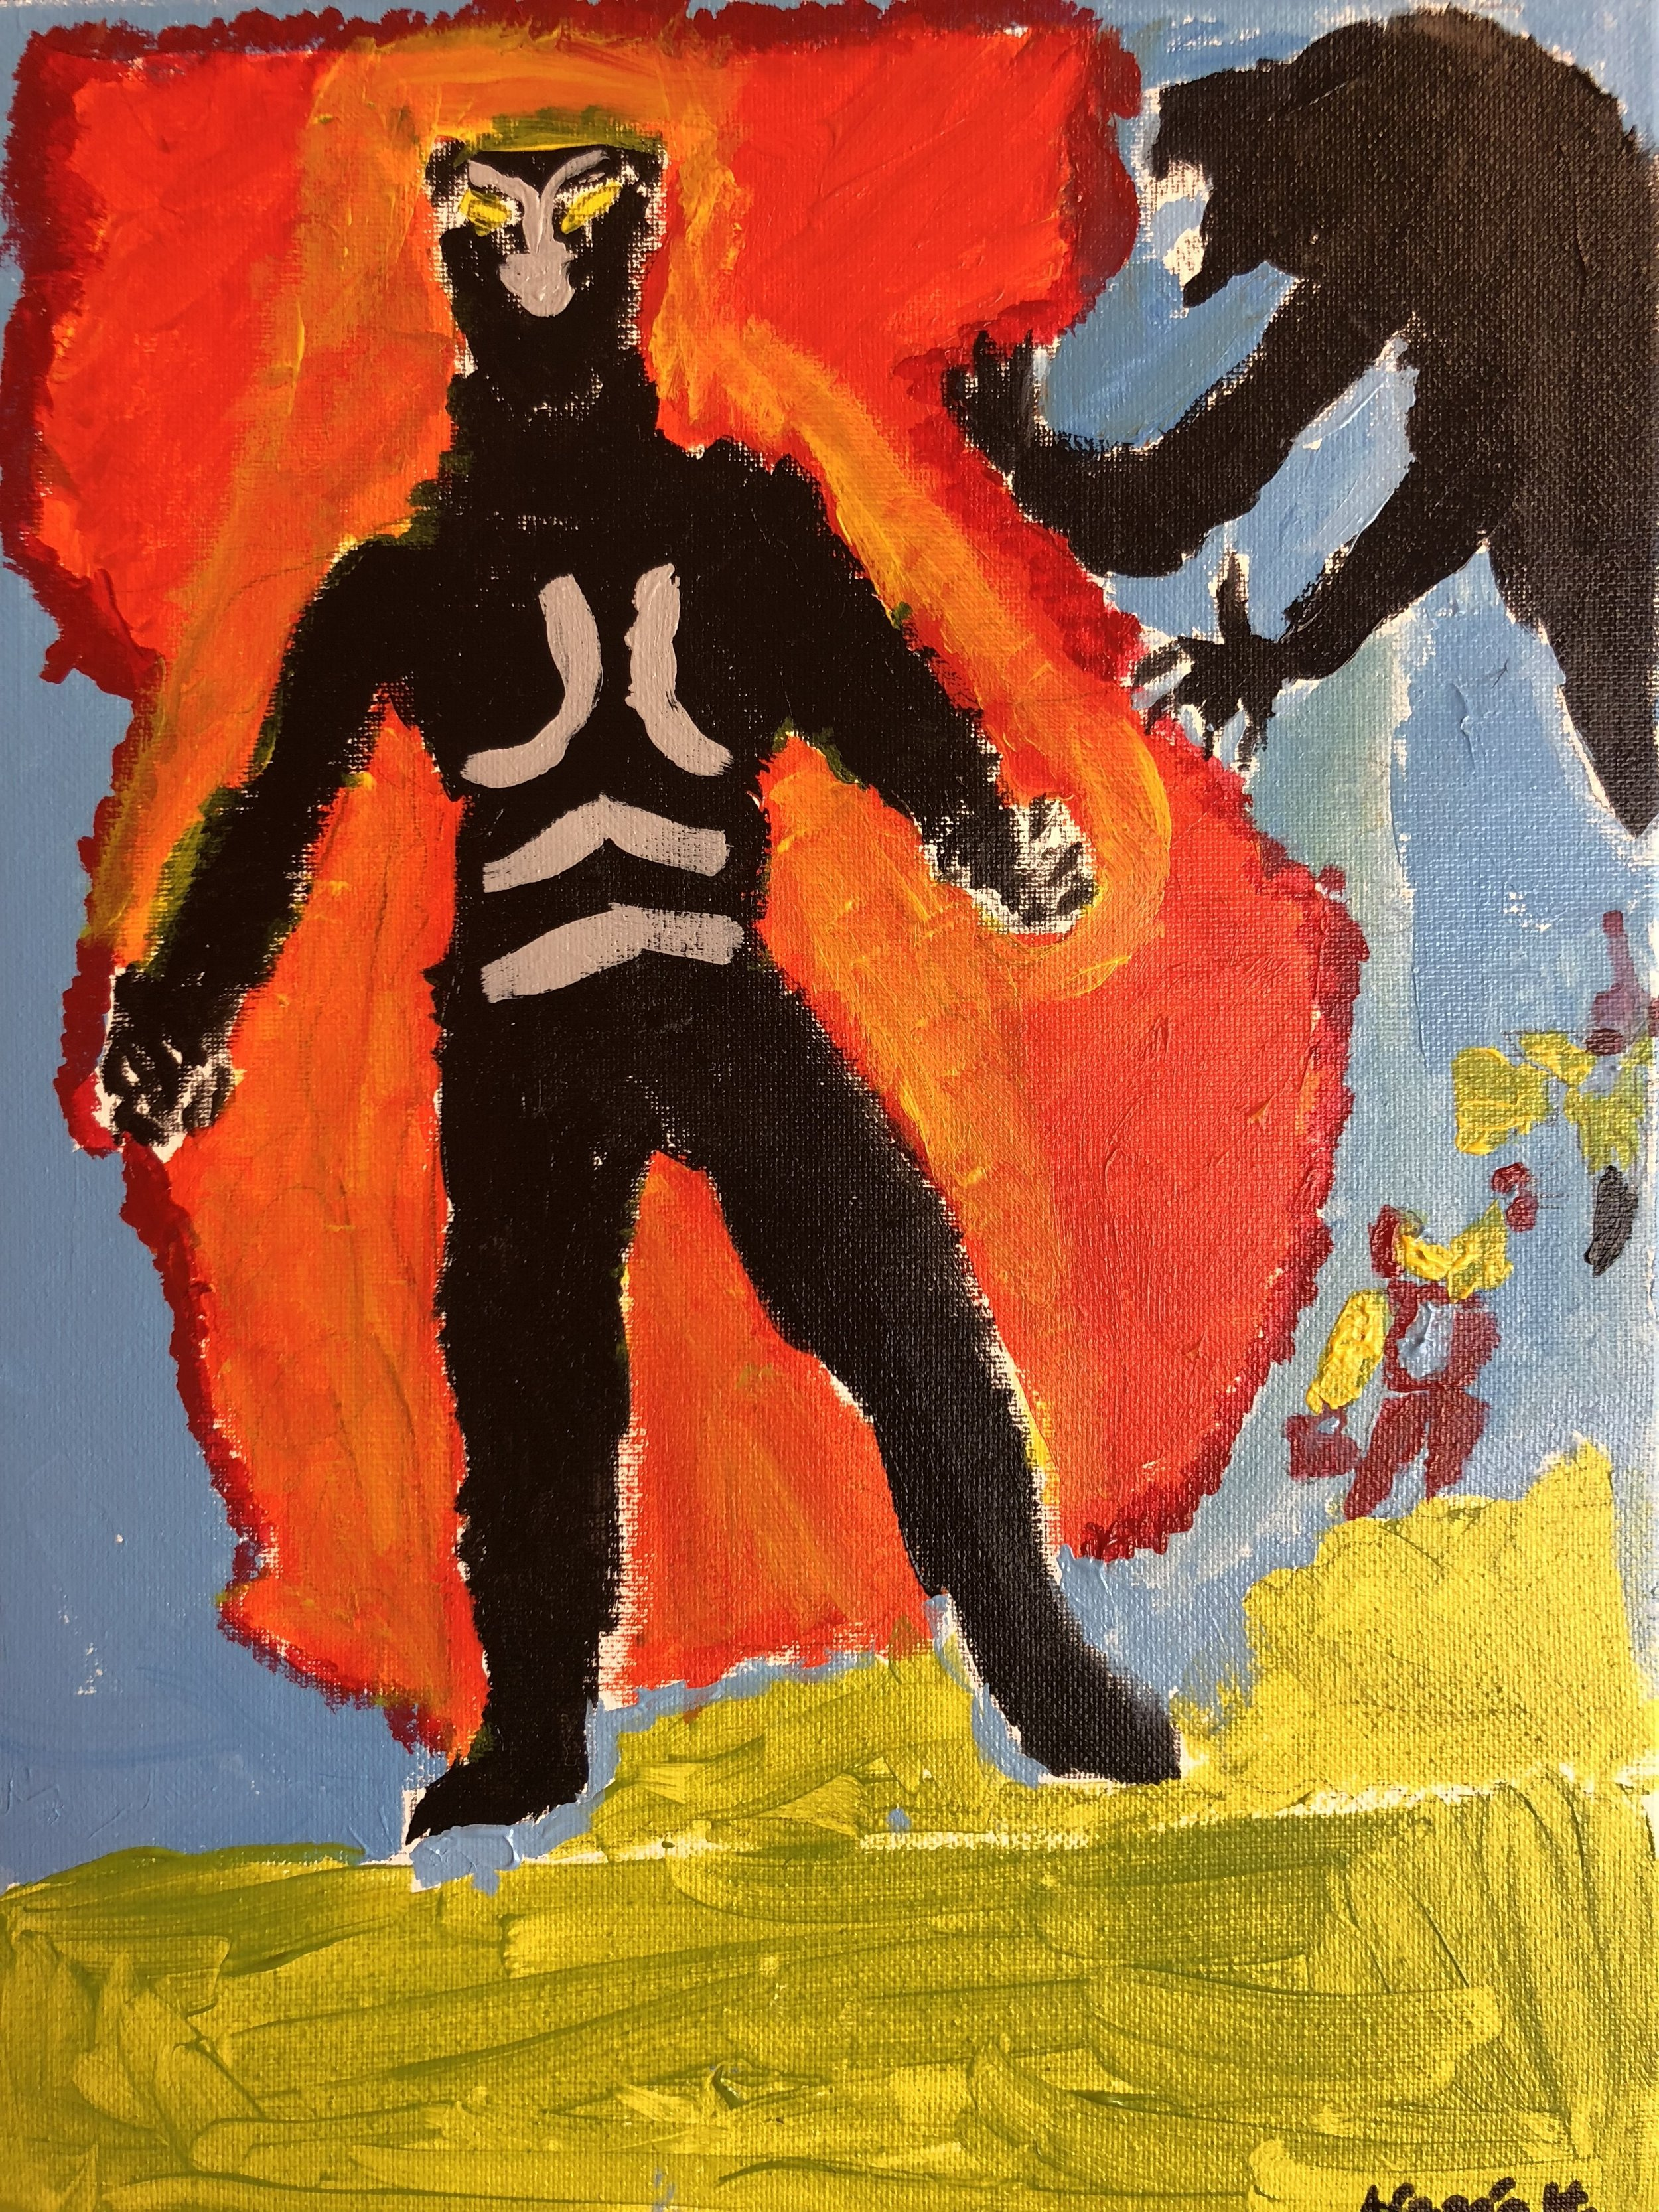 Black Panther and Monster in Acrylics  By Aragon